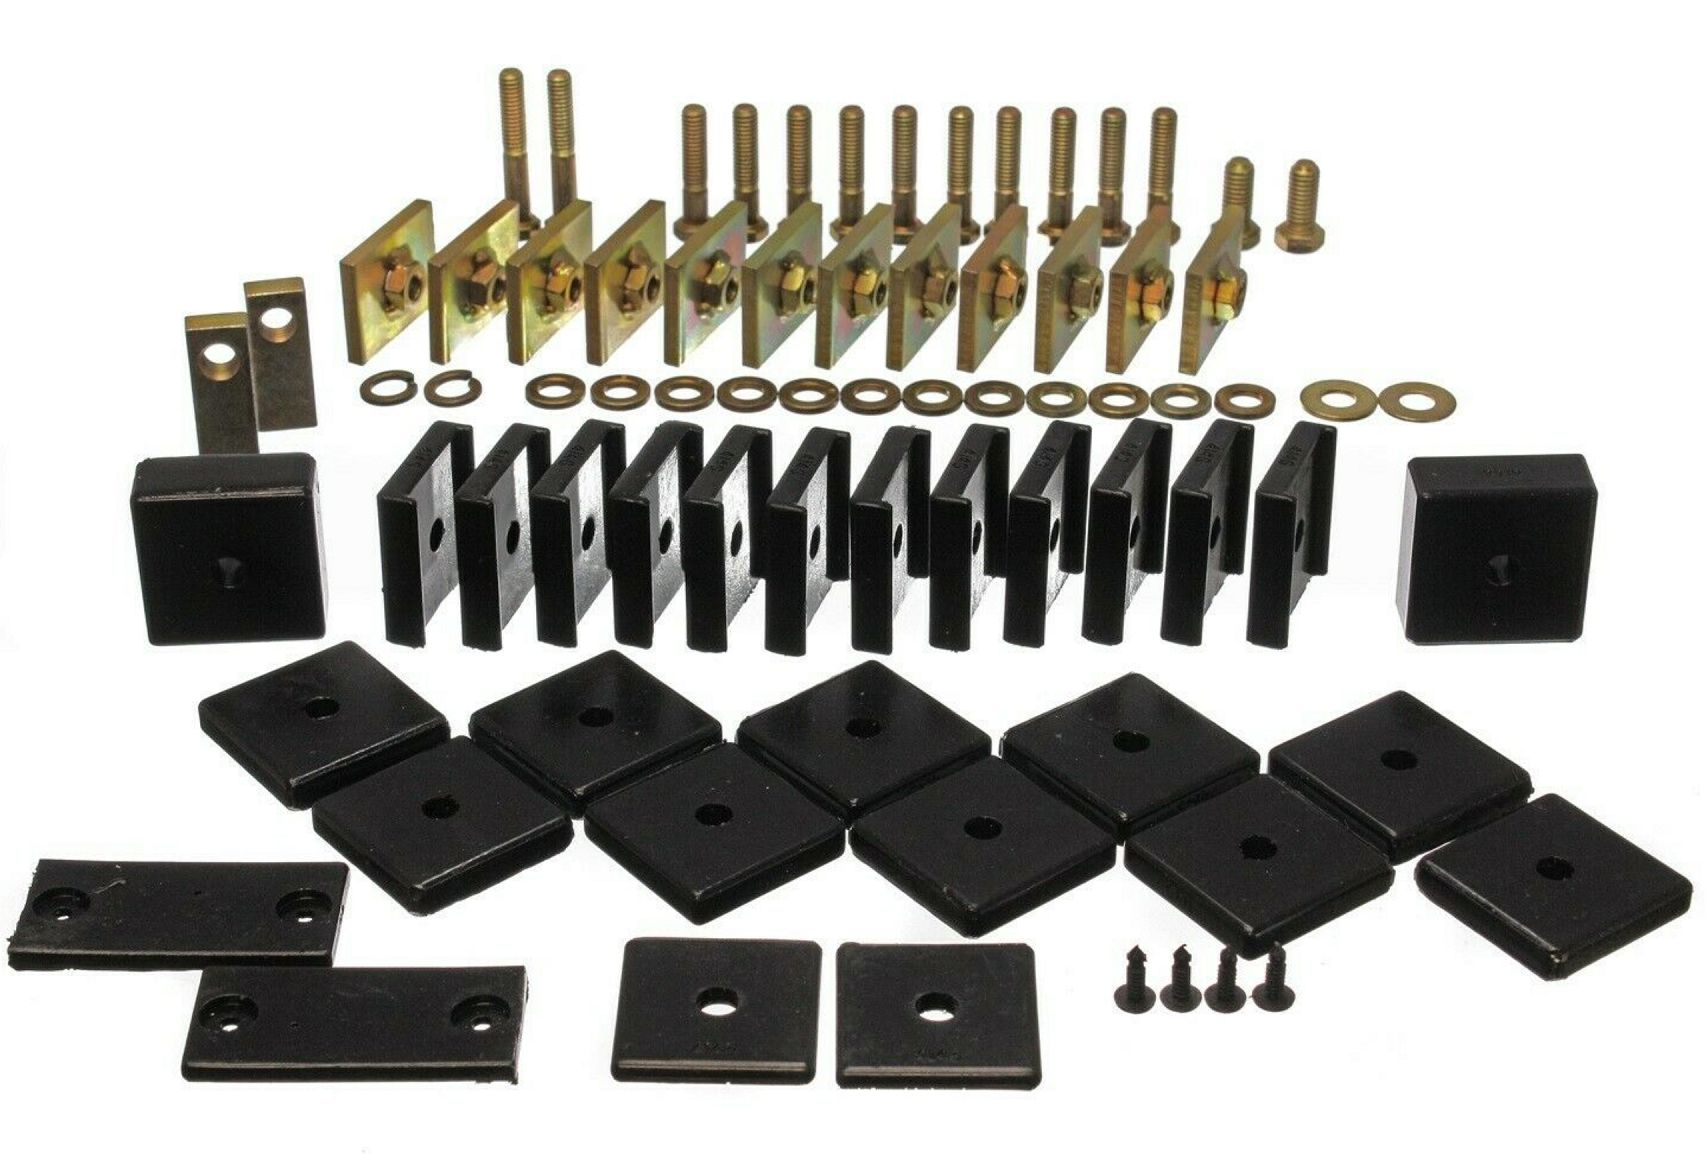 64-78 Landcruiser Full Body Mount Kit